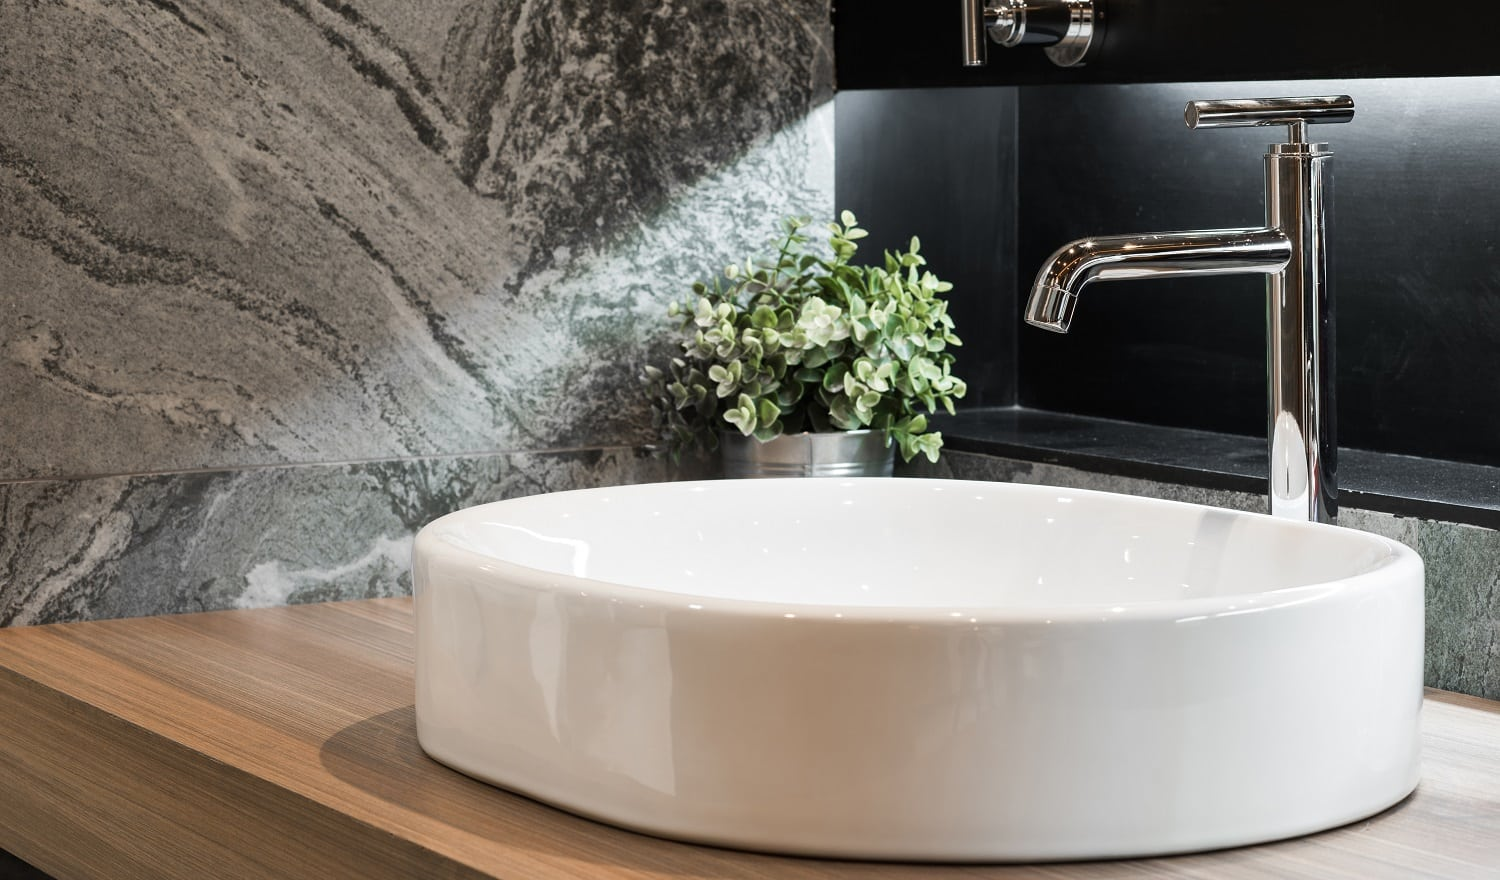 13 Best Utility Sink Faucet Of 2020 Reviewed Architecture Lab